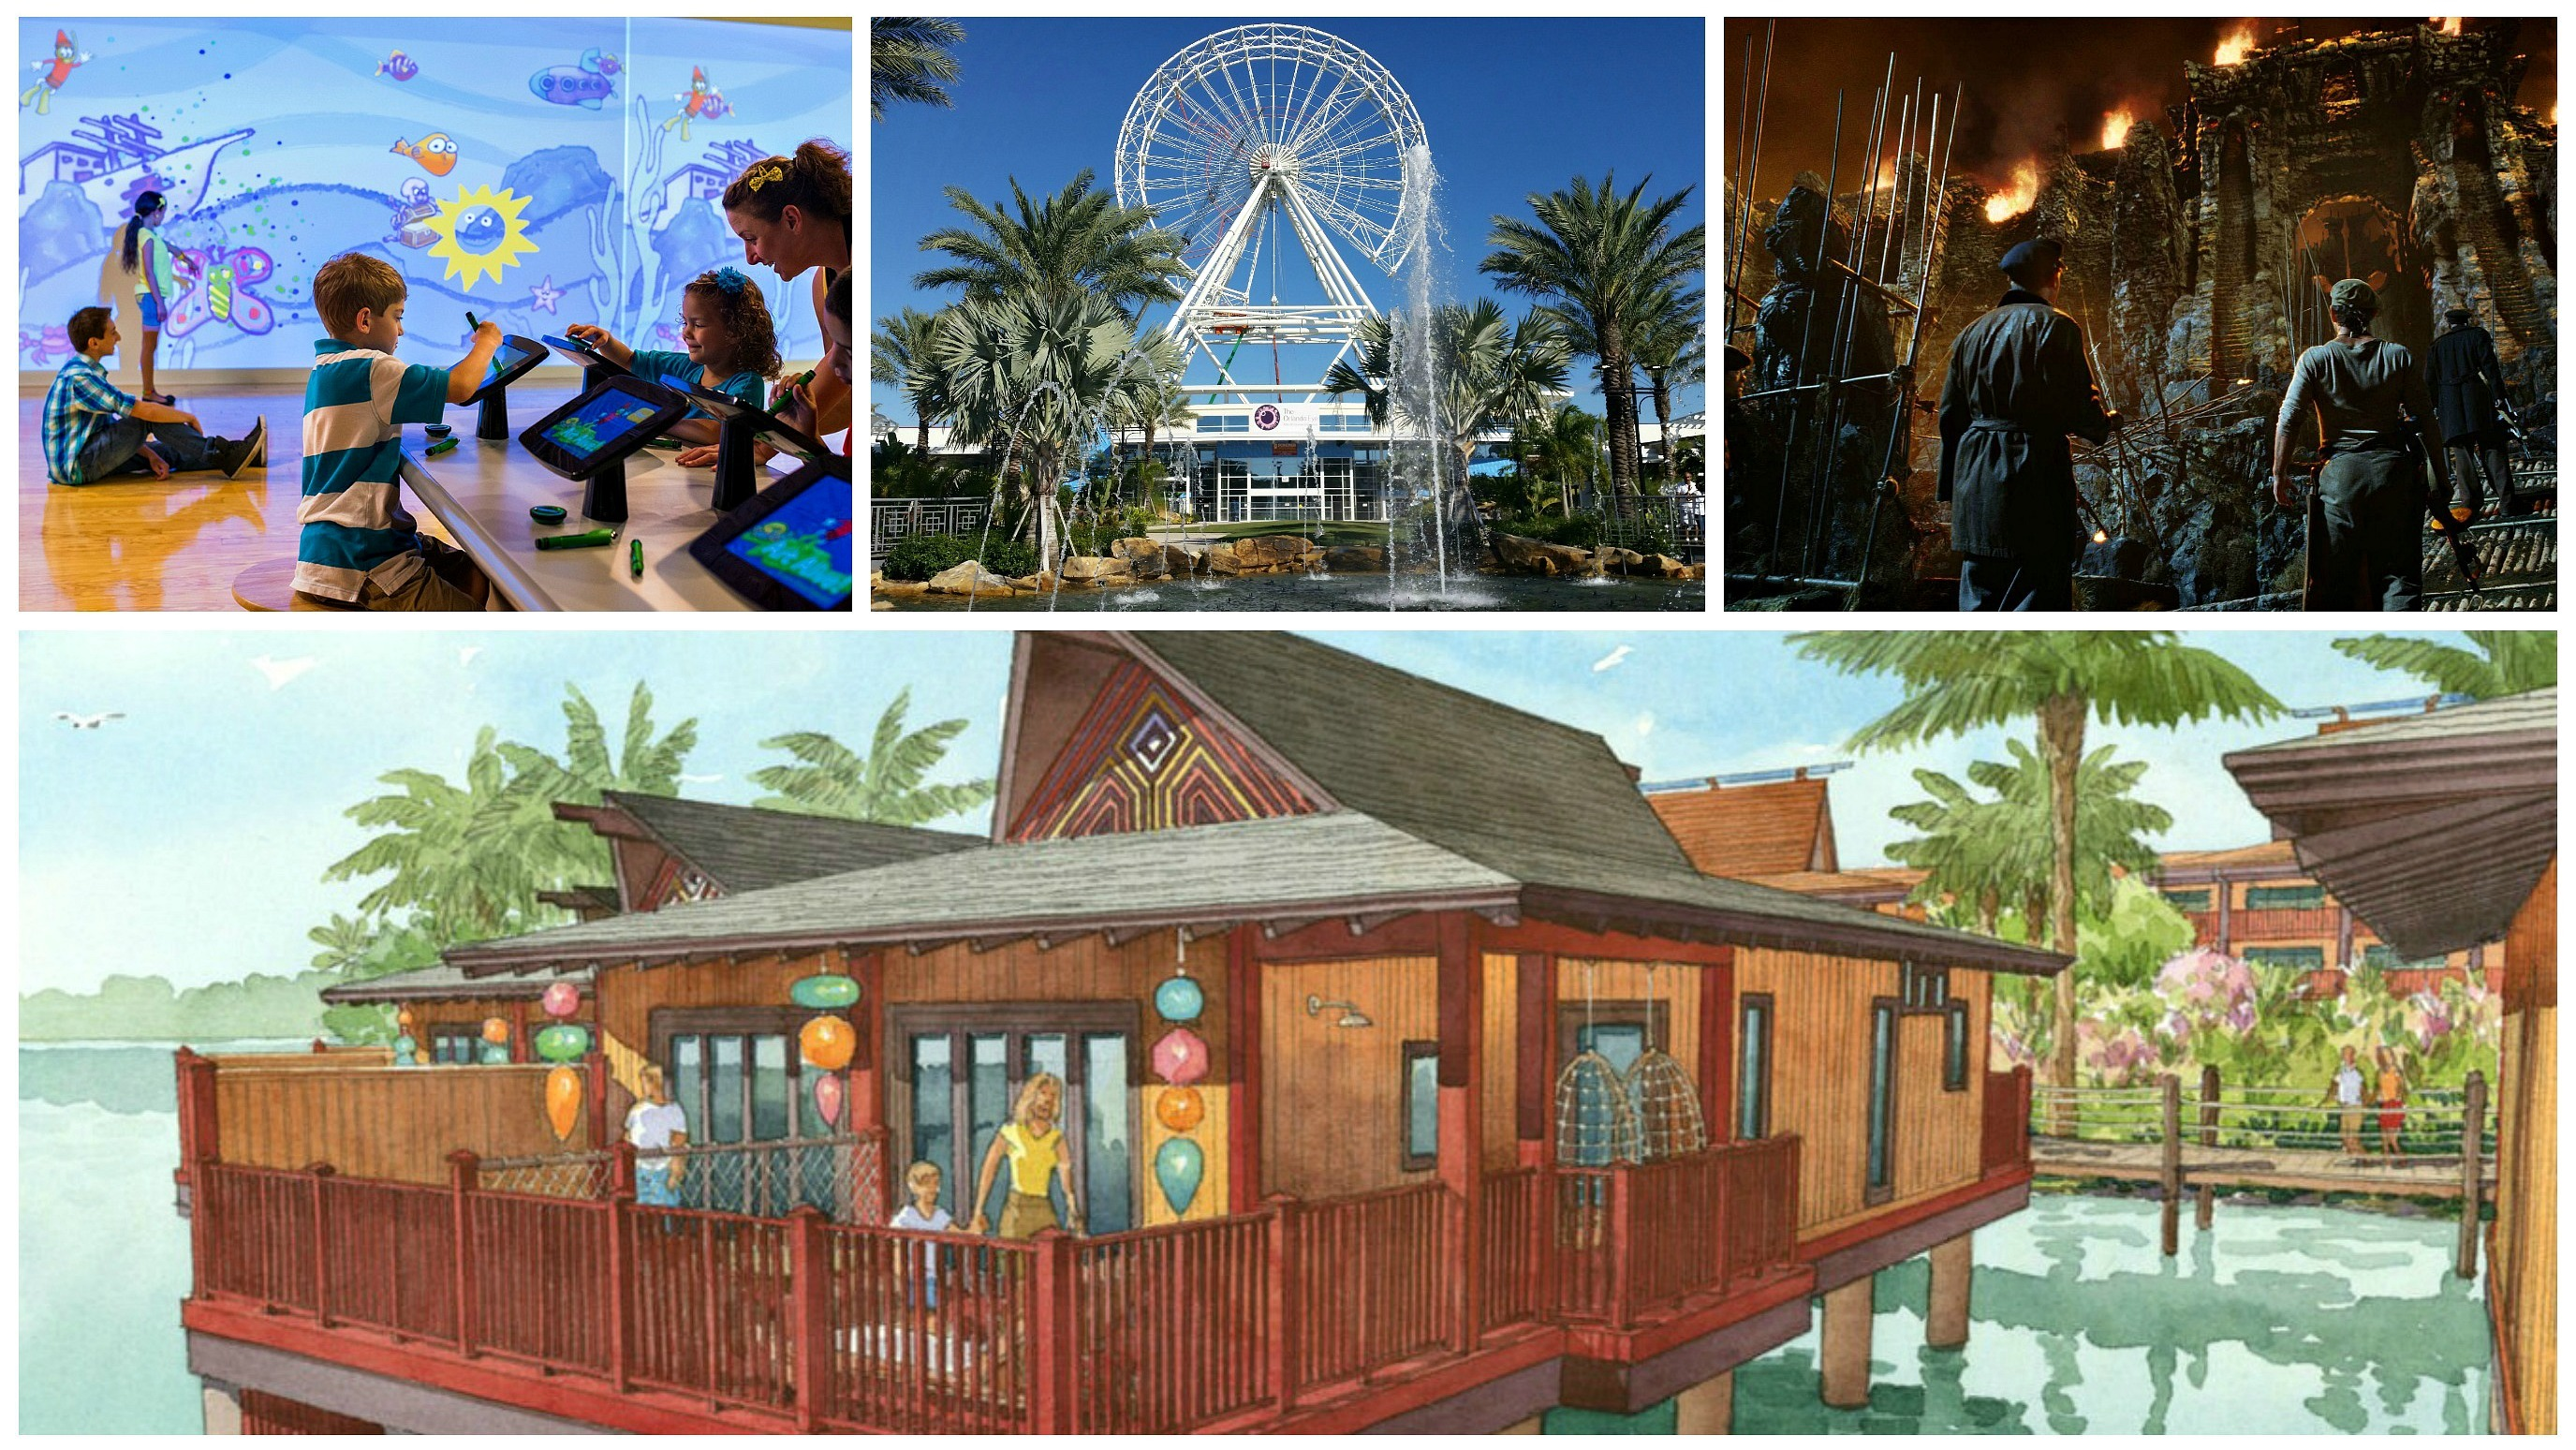 Top 6 attractions and venues coming in 2015